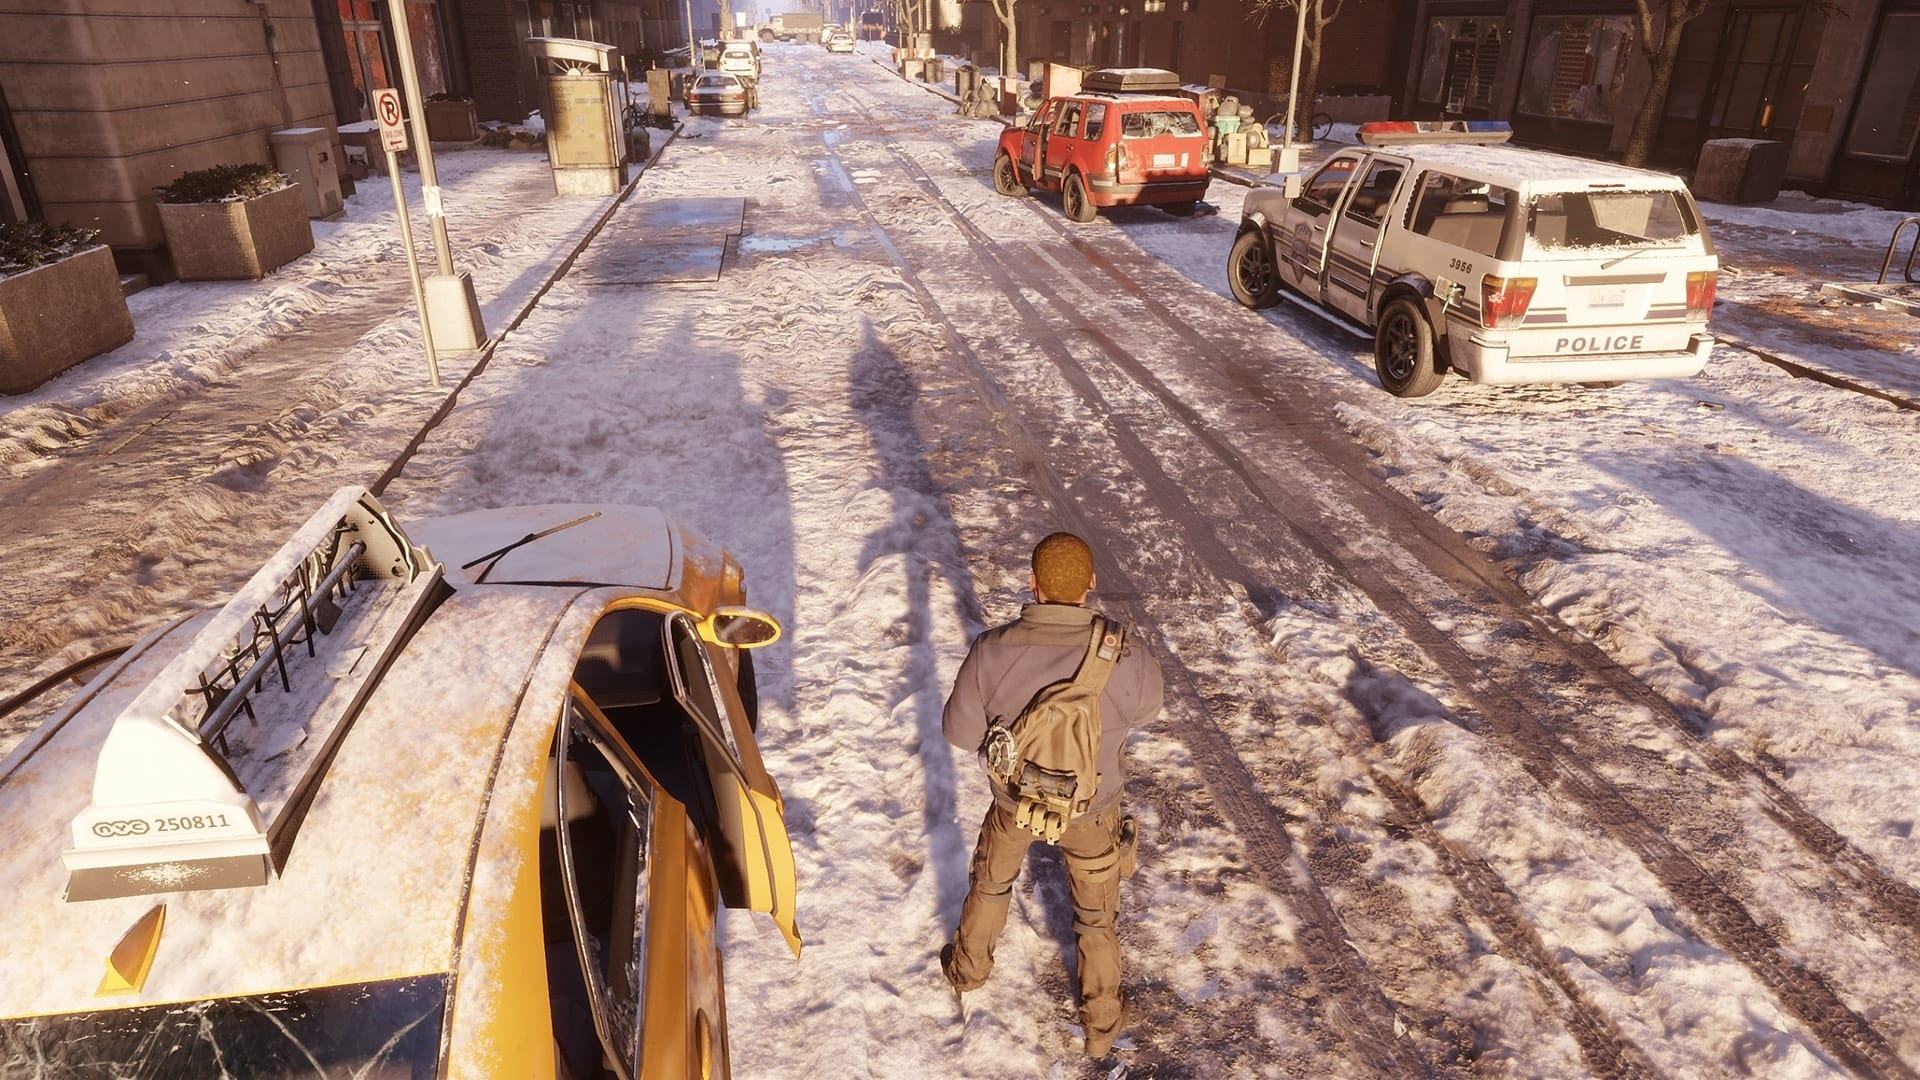 pc gaming.it tom clancys the division recensione 11 - Tom Clancy's The Division - Recensione